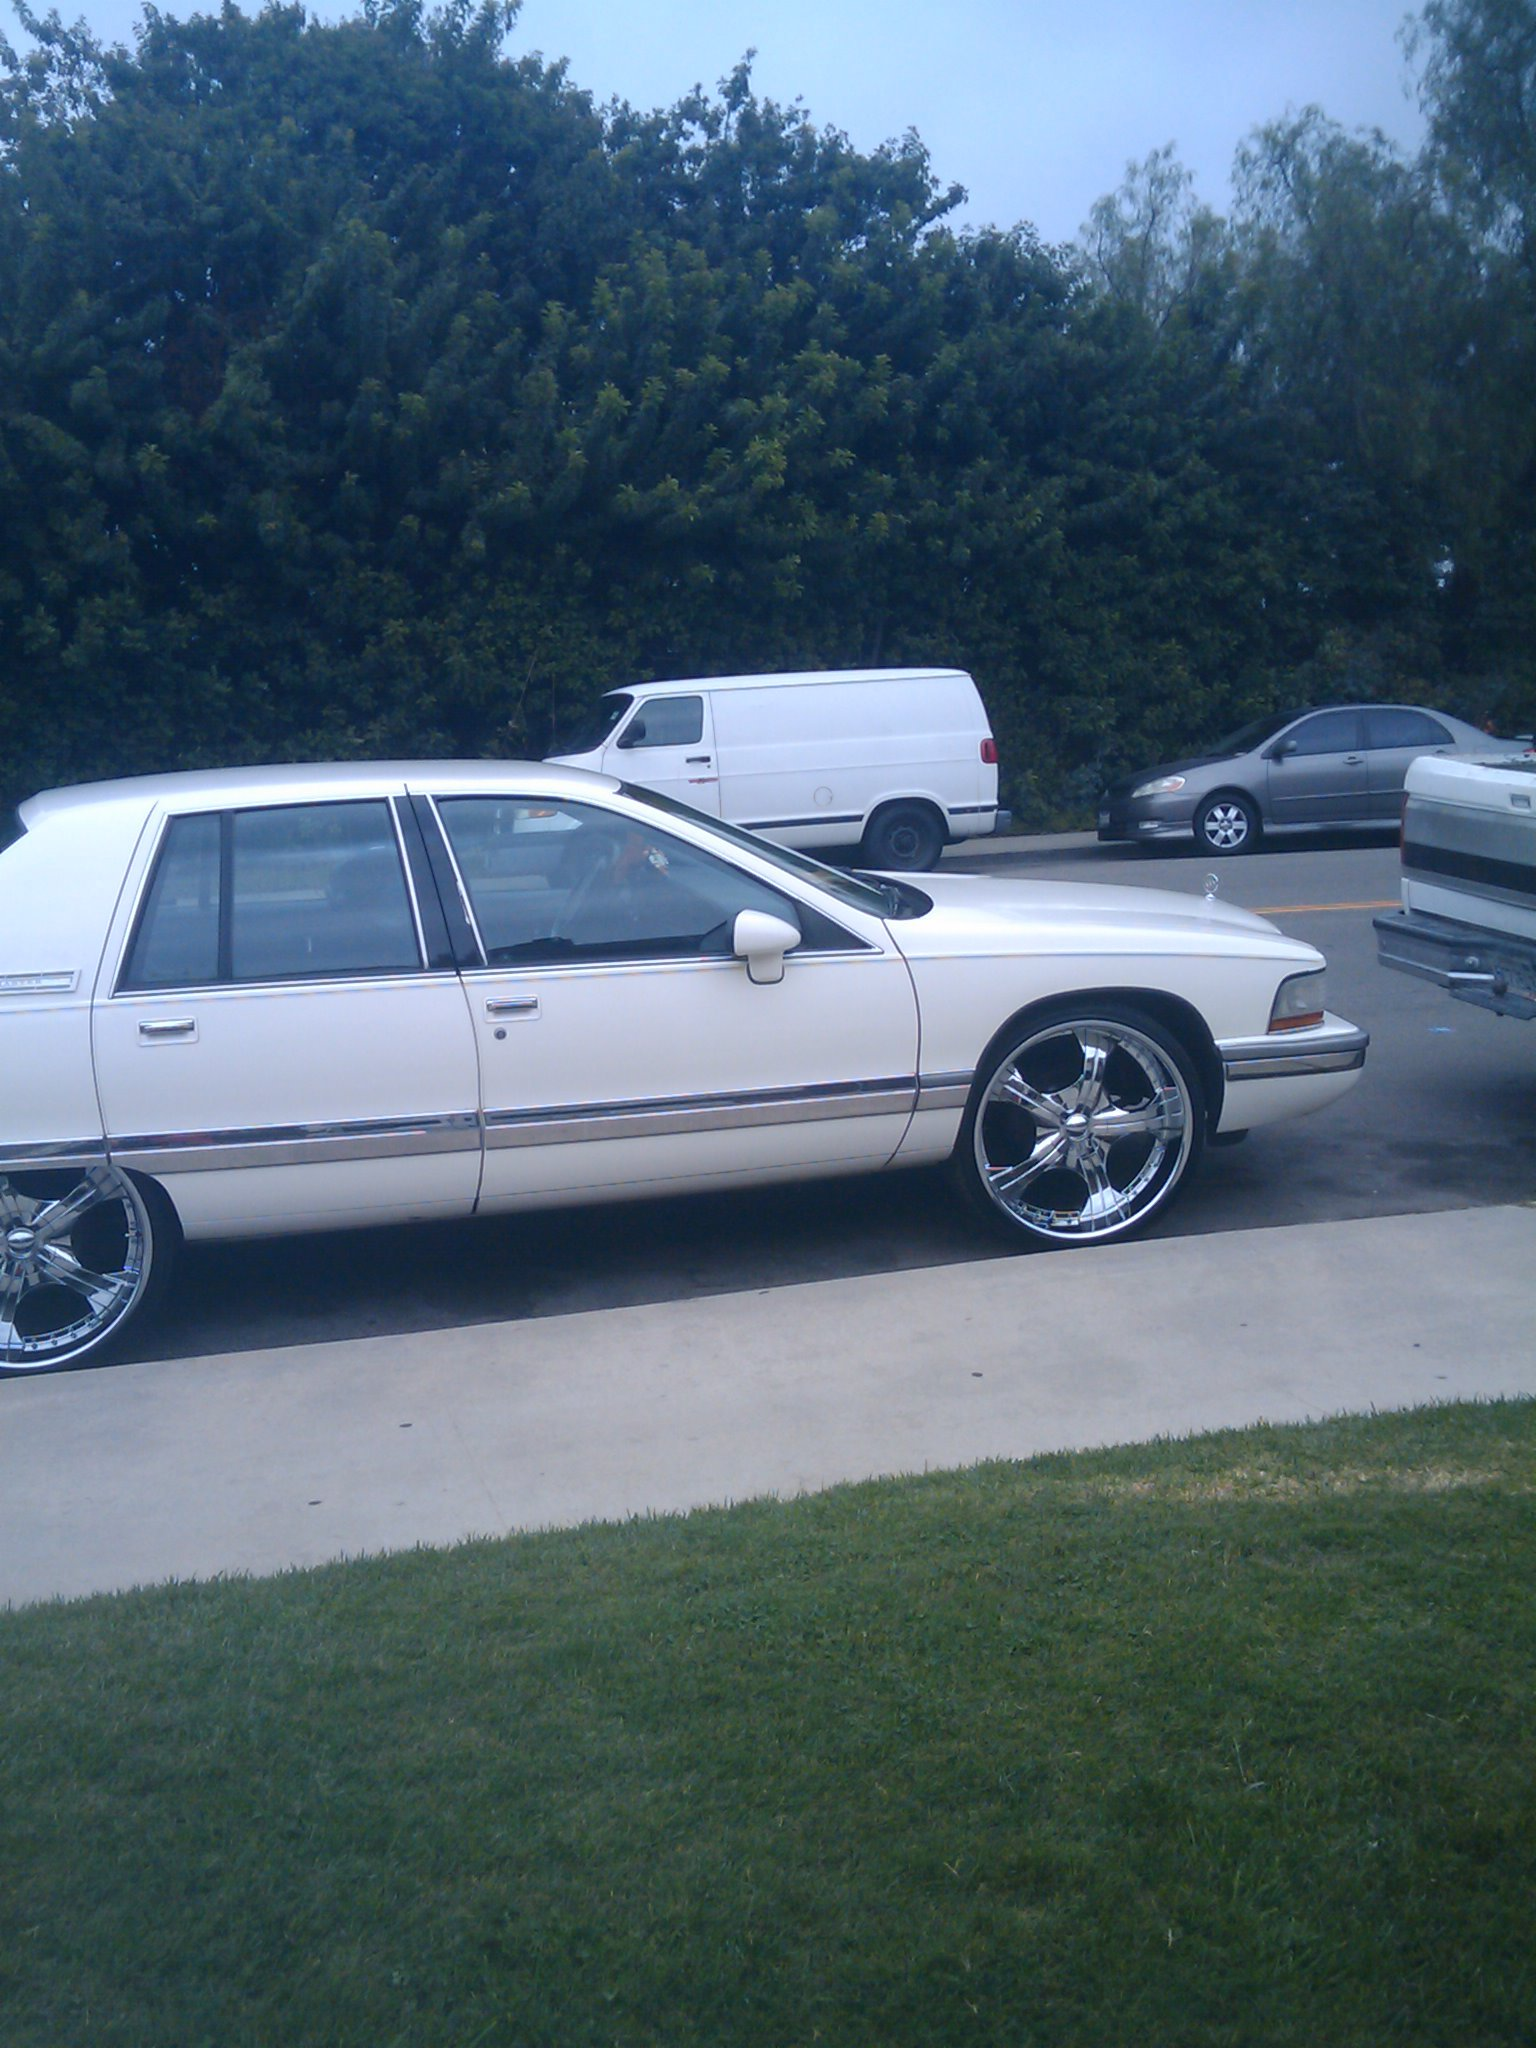 EastTxswagger 1995 Buick Roadmaster